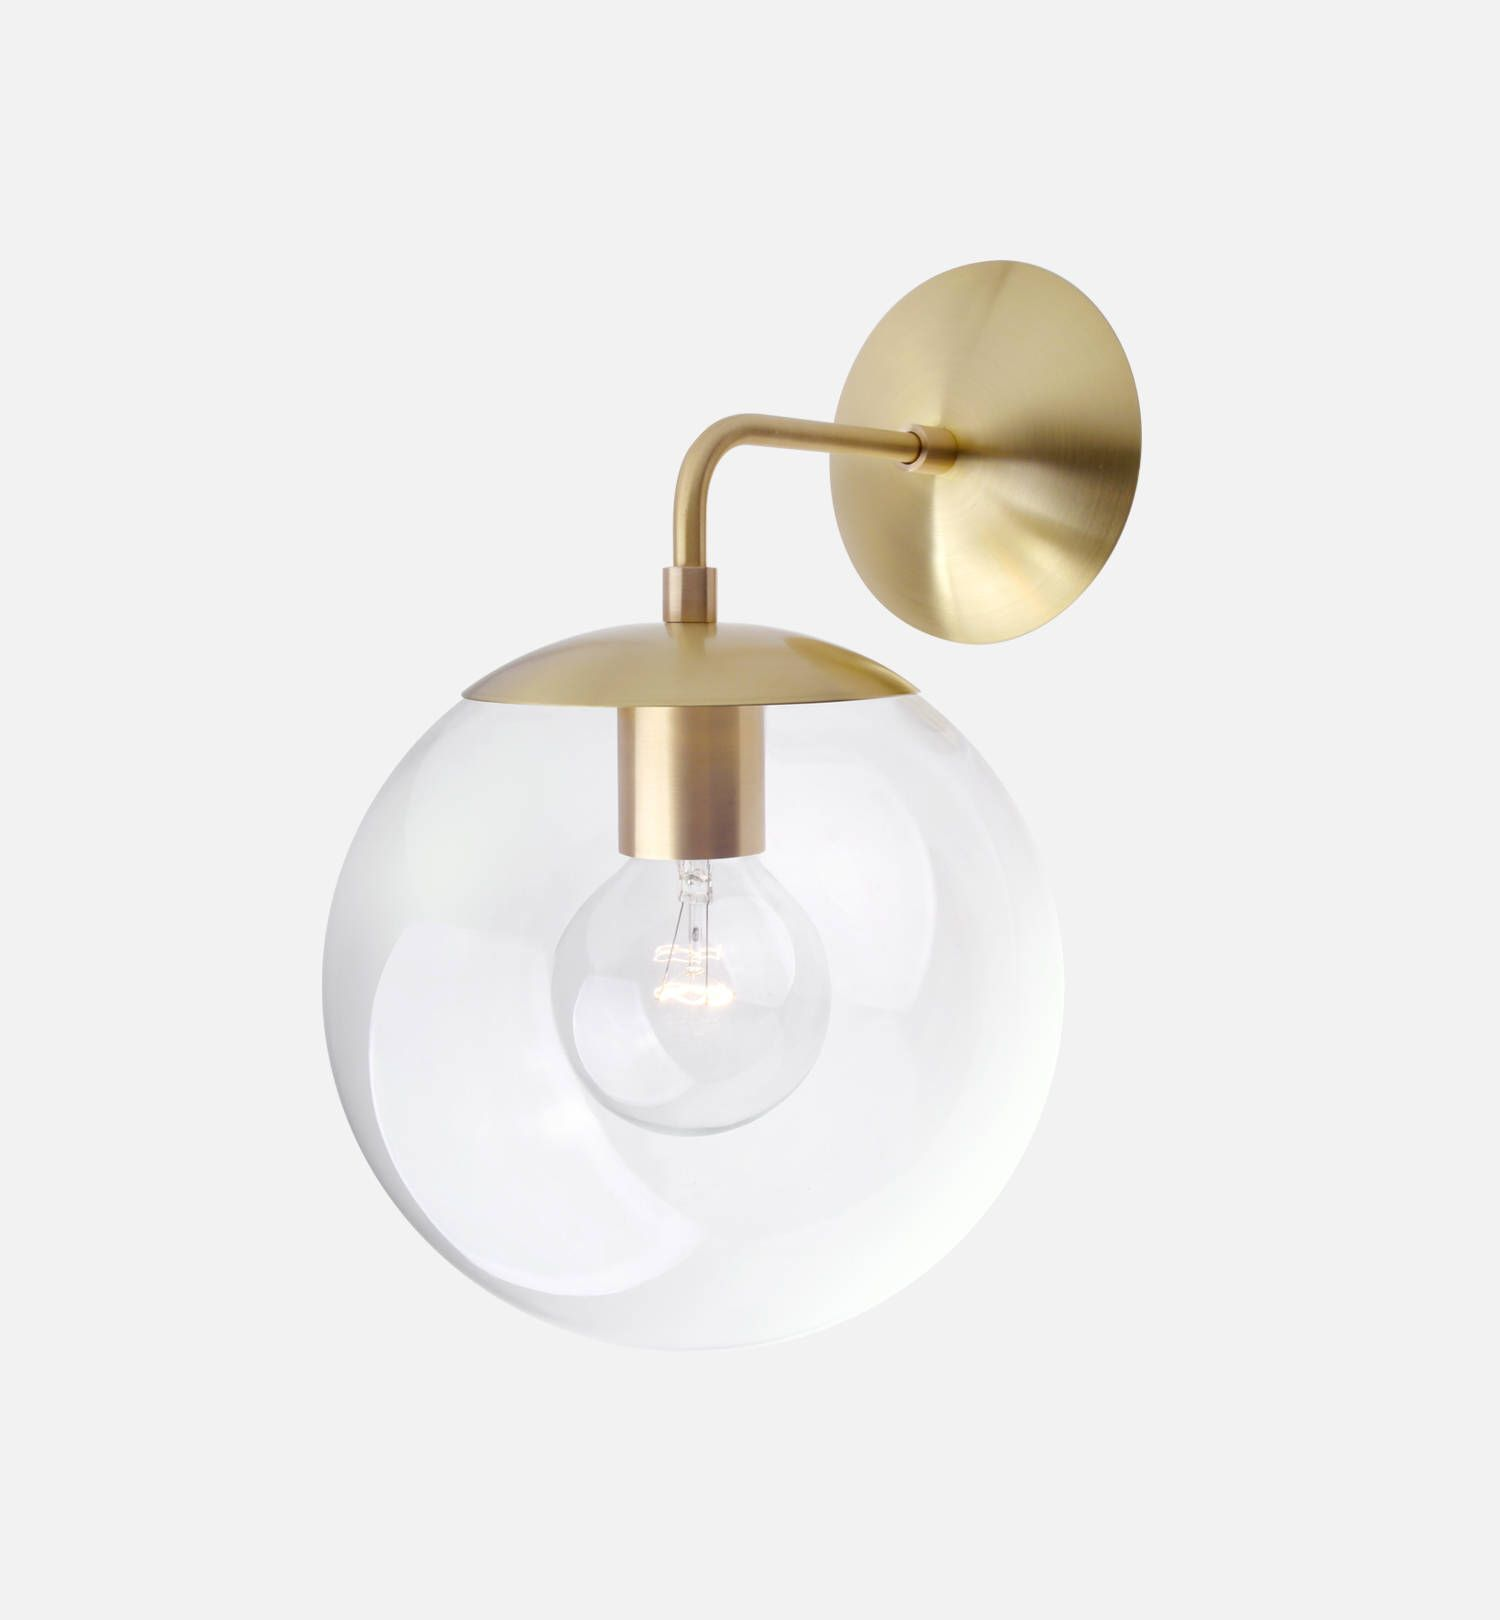 Mid century modern clear glass globe wall sconce light 8 solid mid century modern clear glass globe wall sconce light 8 solid brass minimal arubaitofo Images